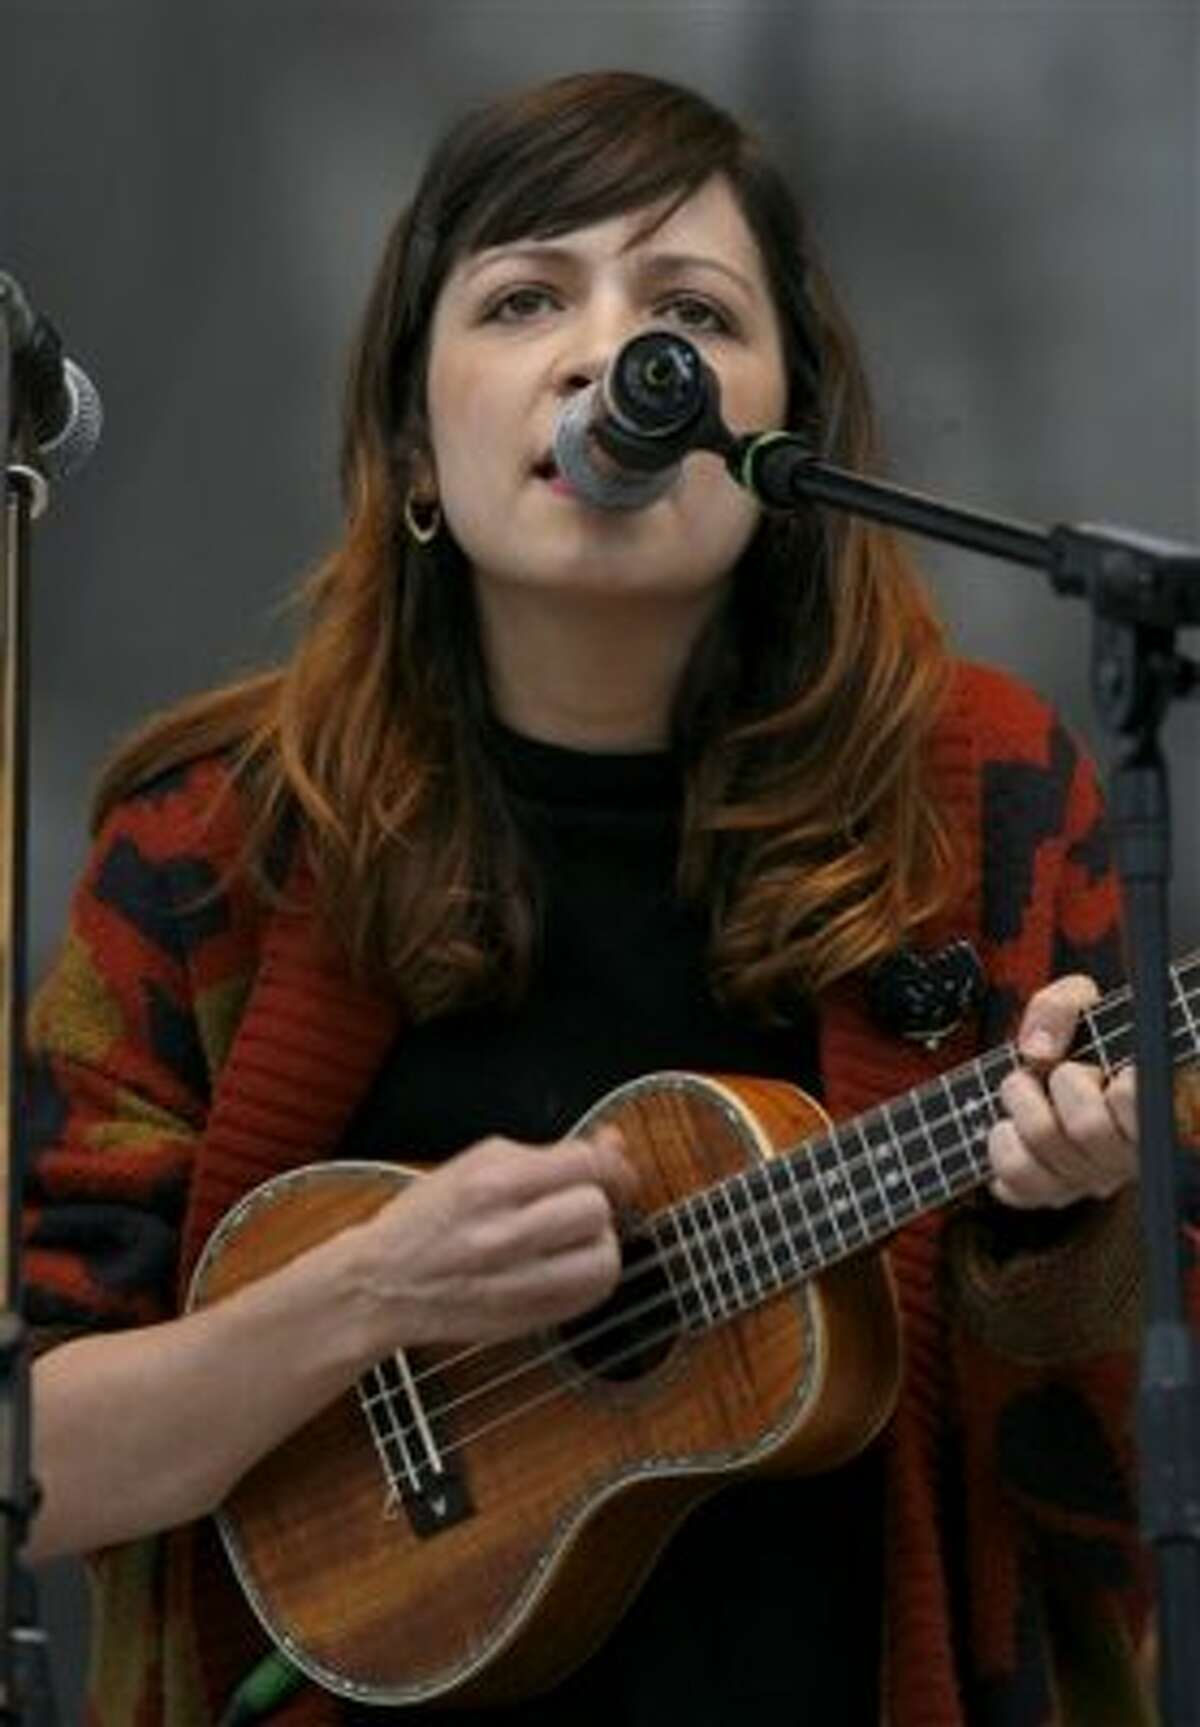 """Mexican multimedia artist Natalia Lafourcade performs during a music festival in support of the student movement #YoSoy132, or """"I am 132"""" in Mexico City, Saturday June 16, 2012. #YoSoy132 is the name of a university movement that rejects the possible return of the old ruling Institutional Revolutionary Party (PRI) ahead of Mexico's July 1 presidential election. (AP Photo/Marco Ugarte) (AP)"""